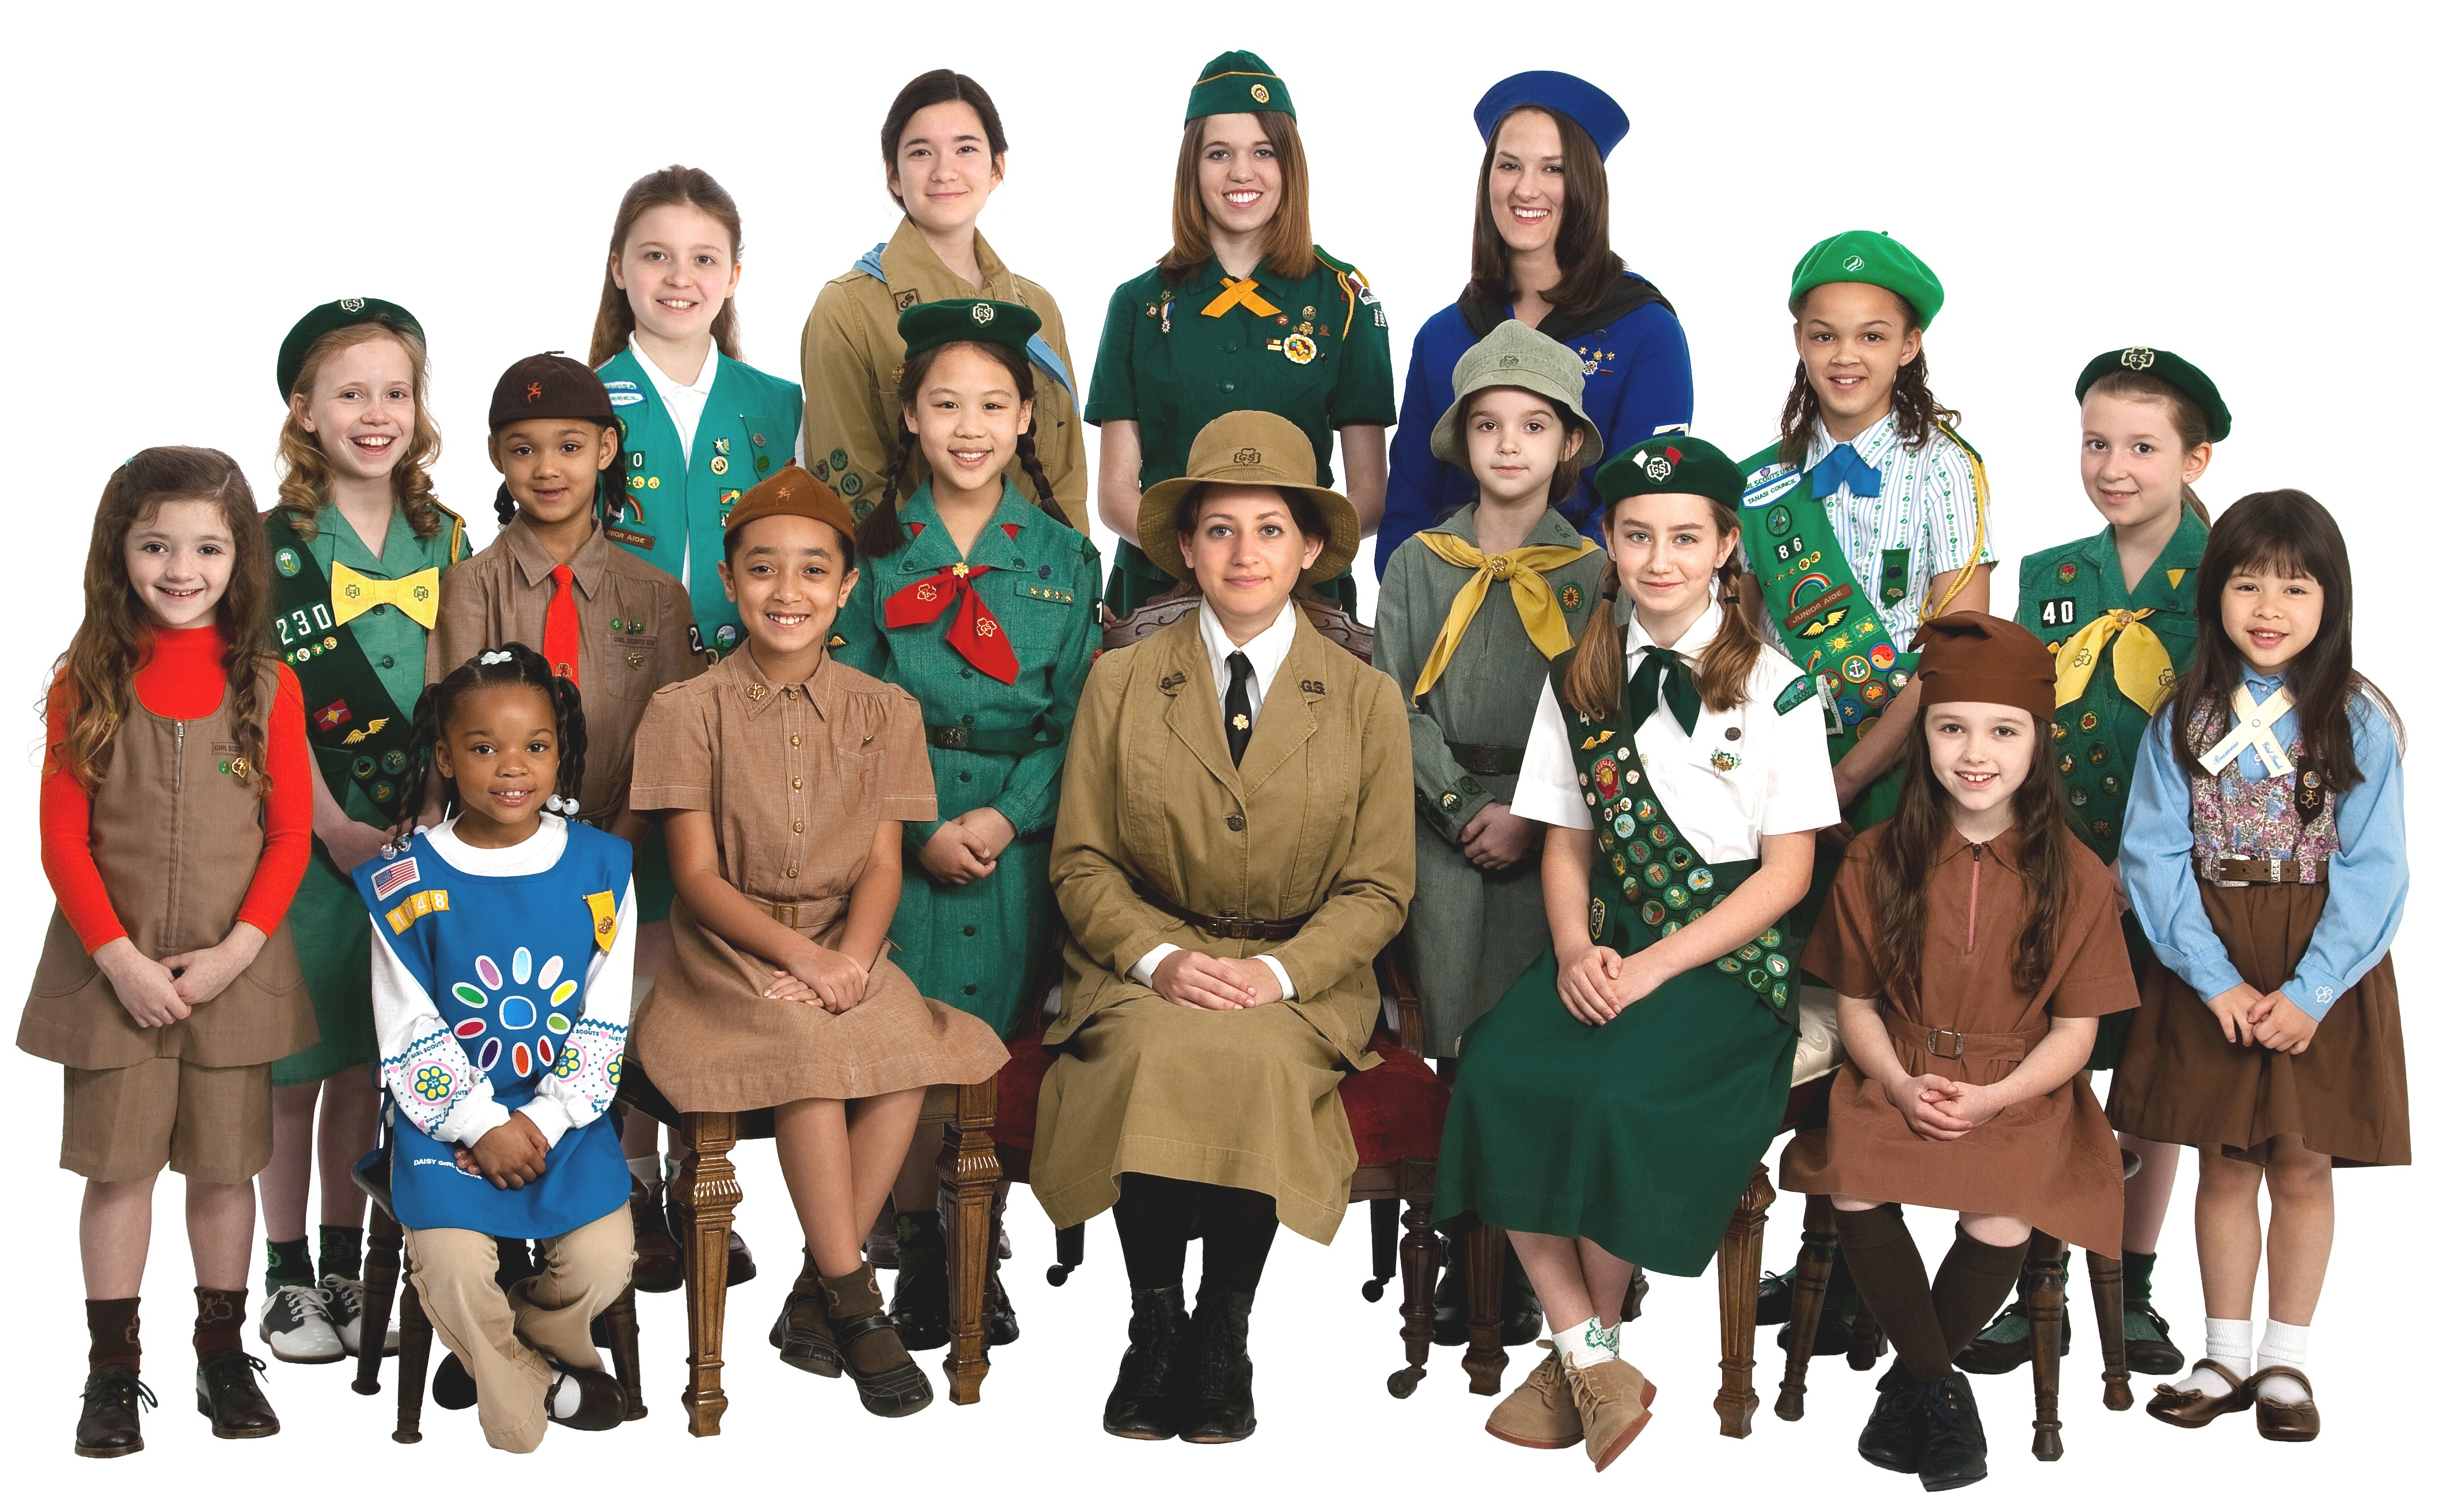 Girl Scouts: The Most Notorious Gang In History – Half and Half